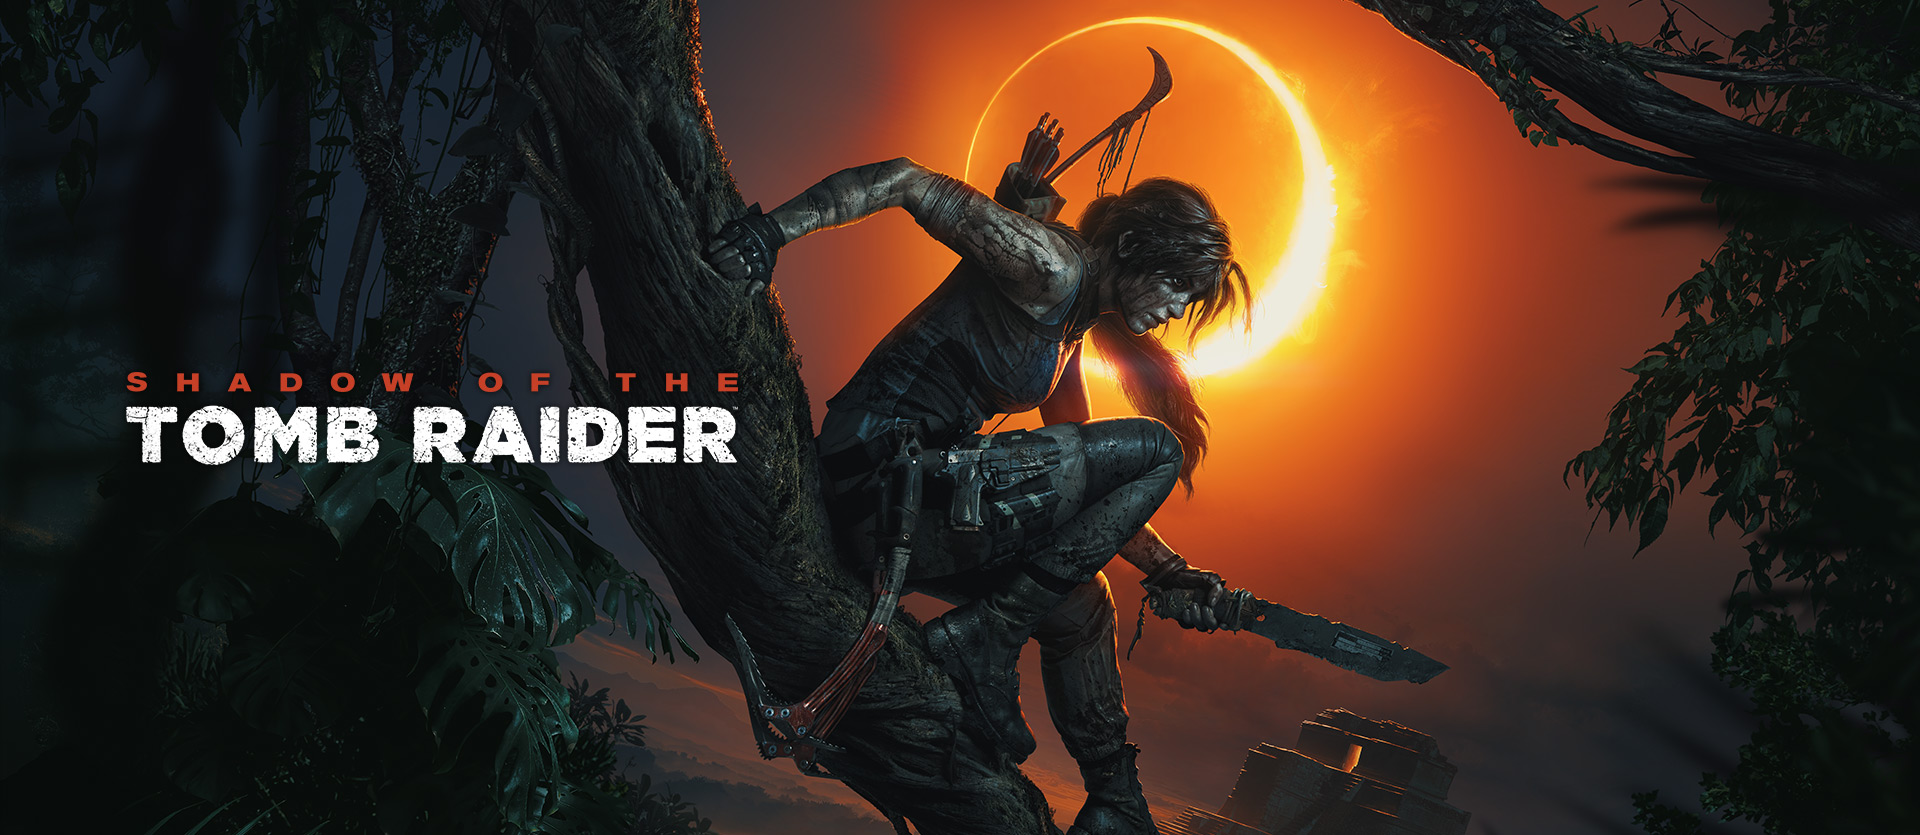 Shadow of the Tomb Raider: Definitive Edition phát hành vào 5 tháng 11